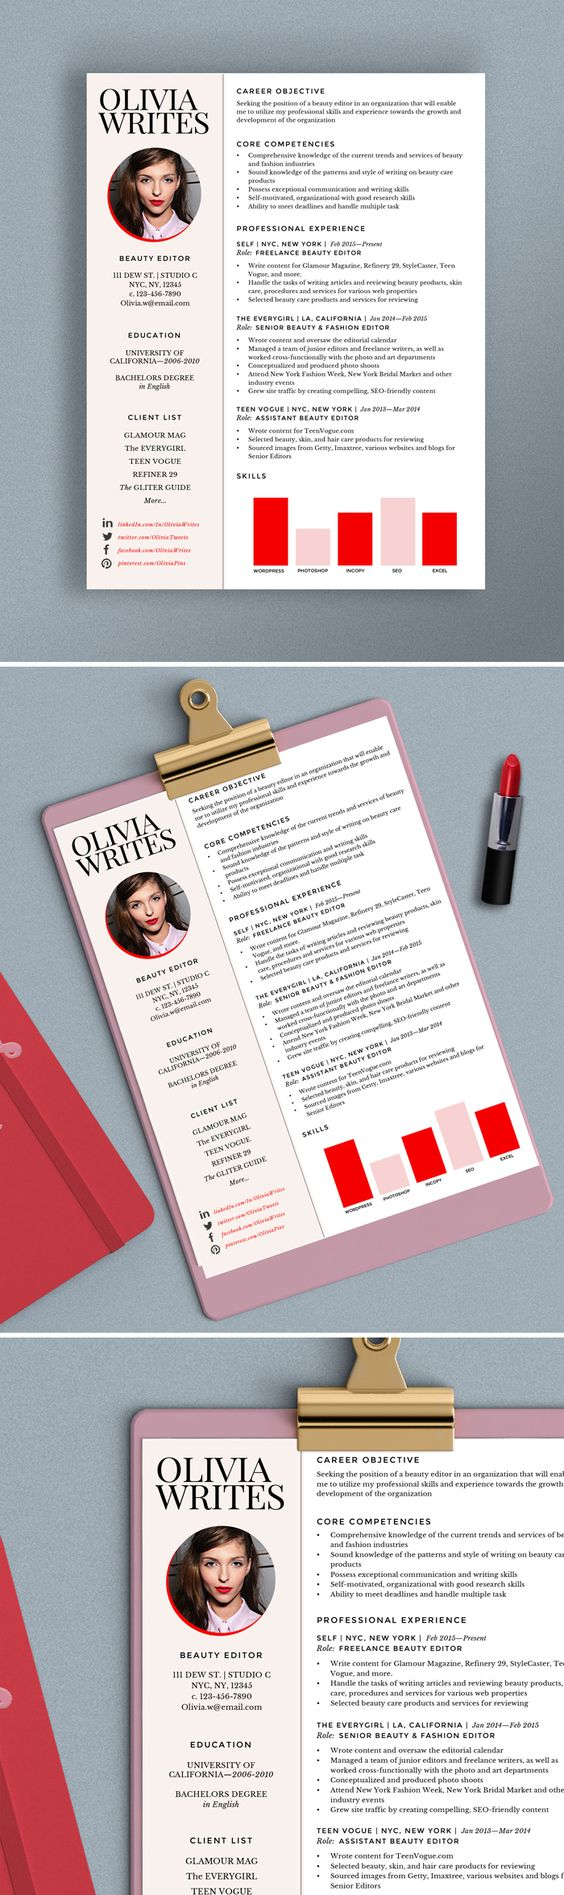 free resume templates  Creative Resume Formats Modern Resume Template Pages  Creative Pertaining To    Exciting